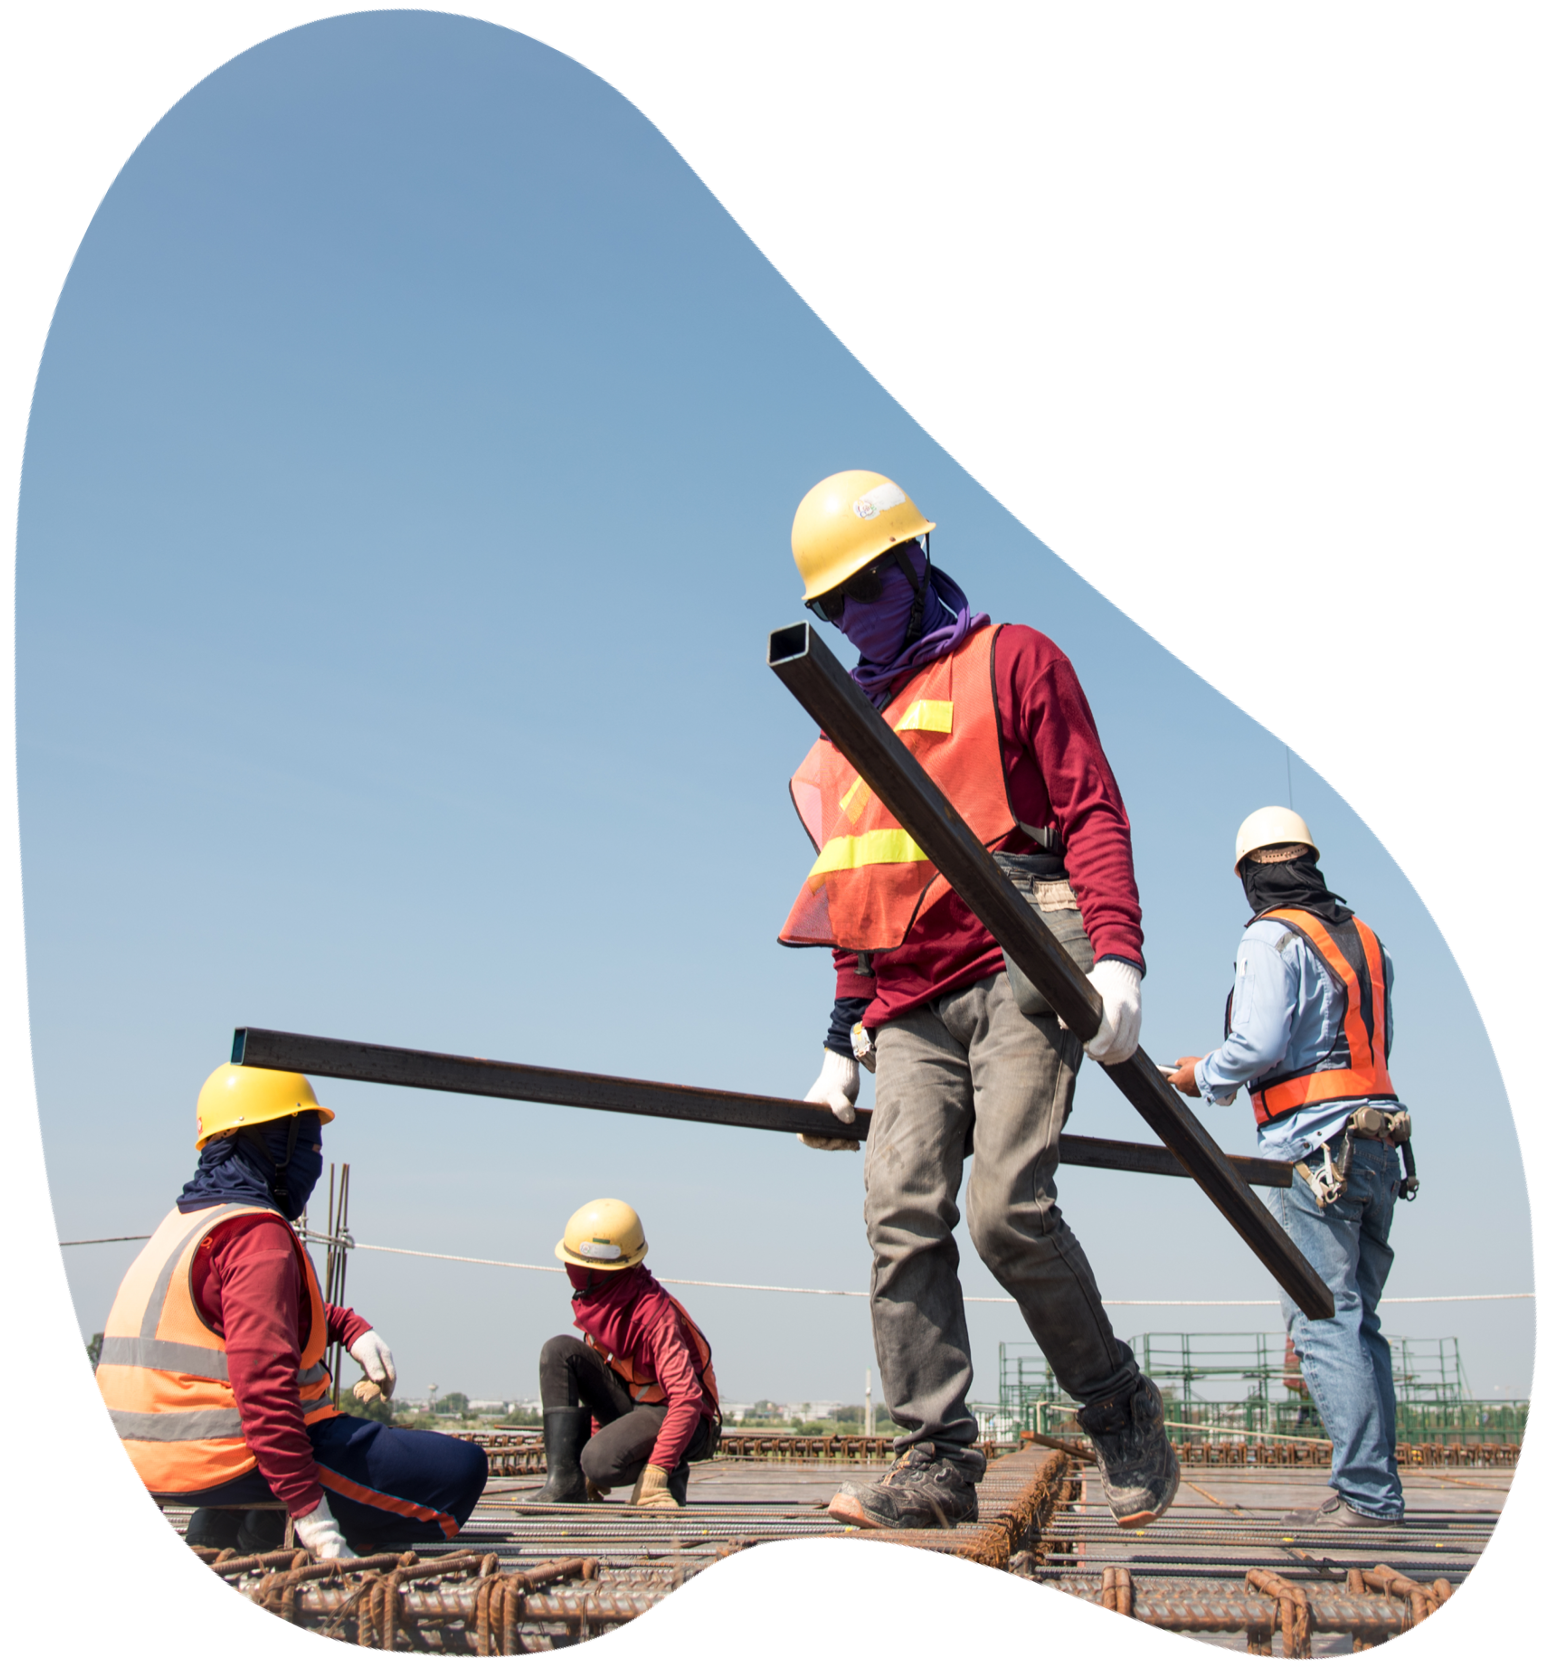 Construction workers carrying materials and working on-site